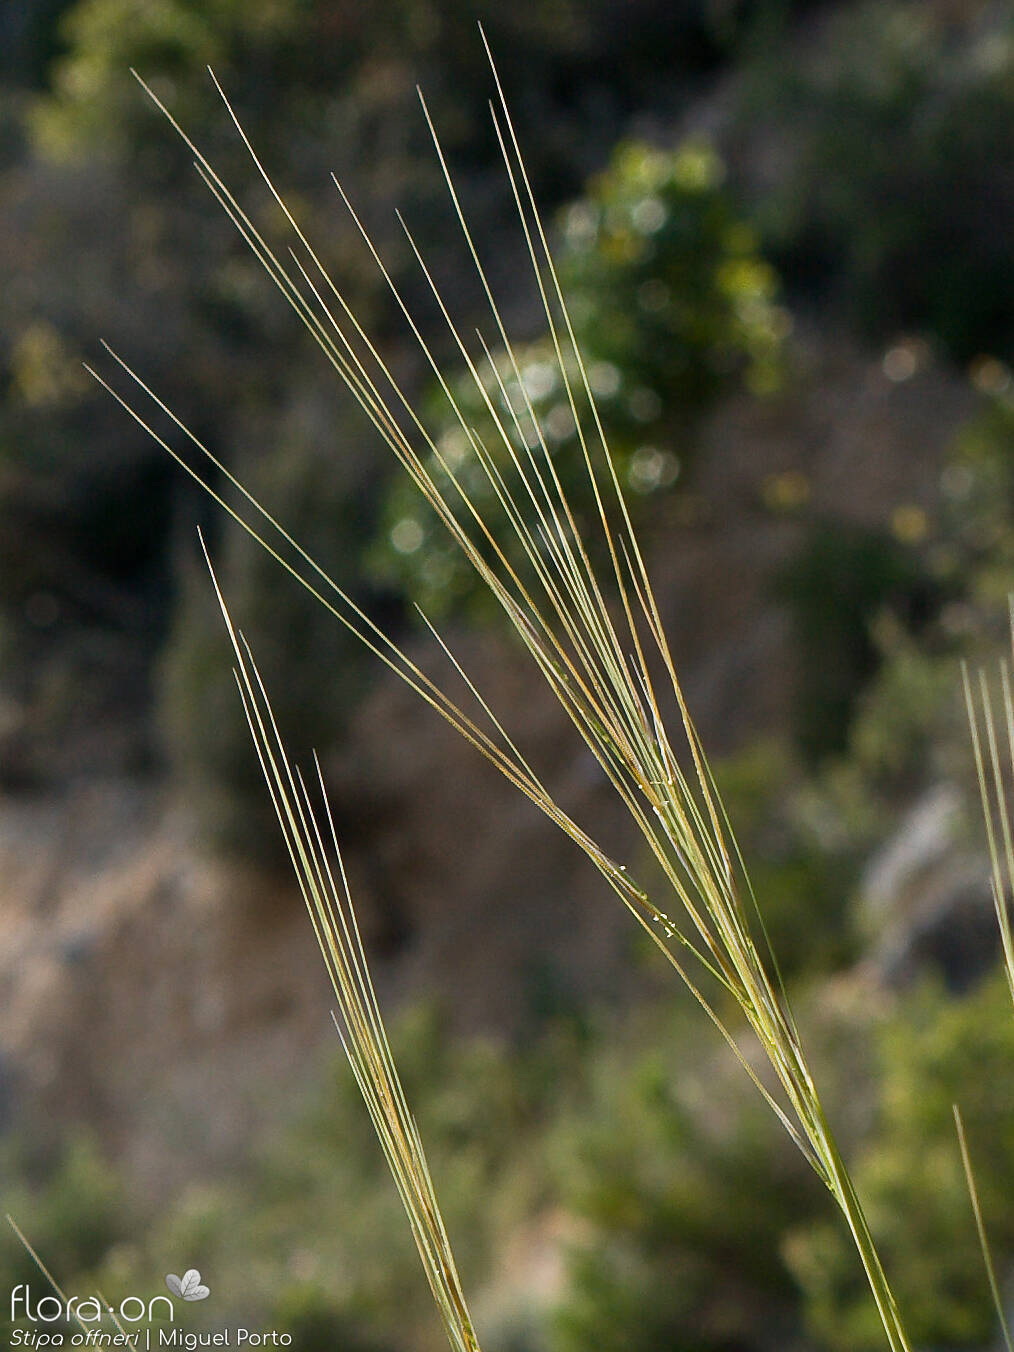 Stipa offneri - Flor (geral) | Miguel Porto; CC BY-NC 4.0